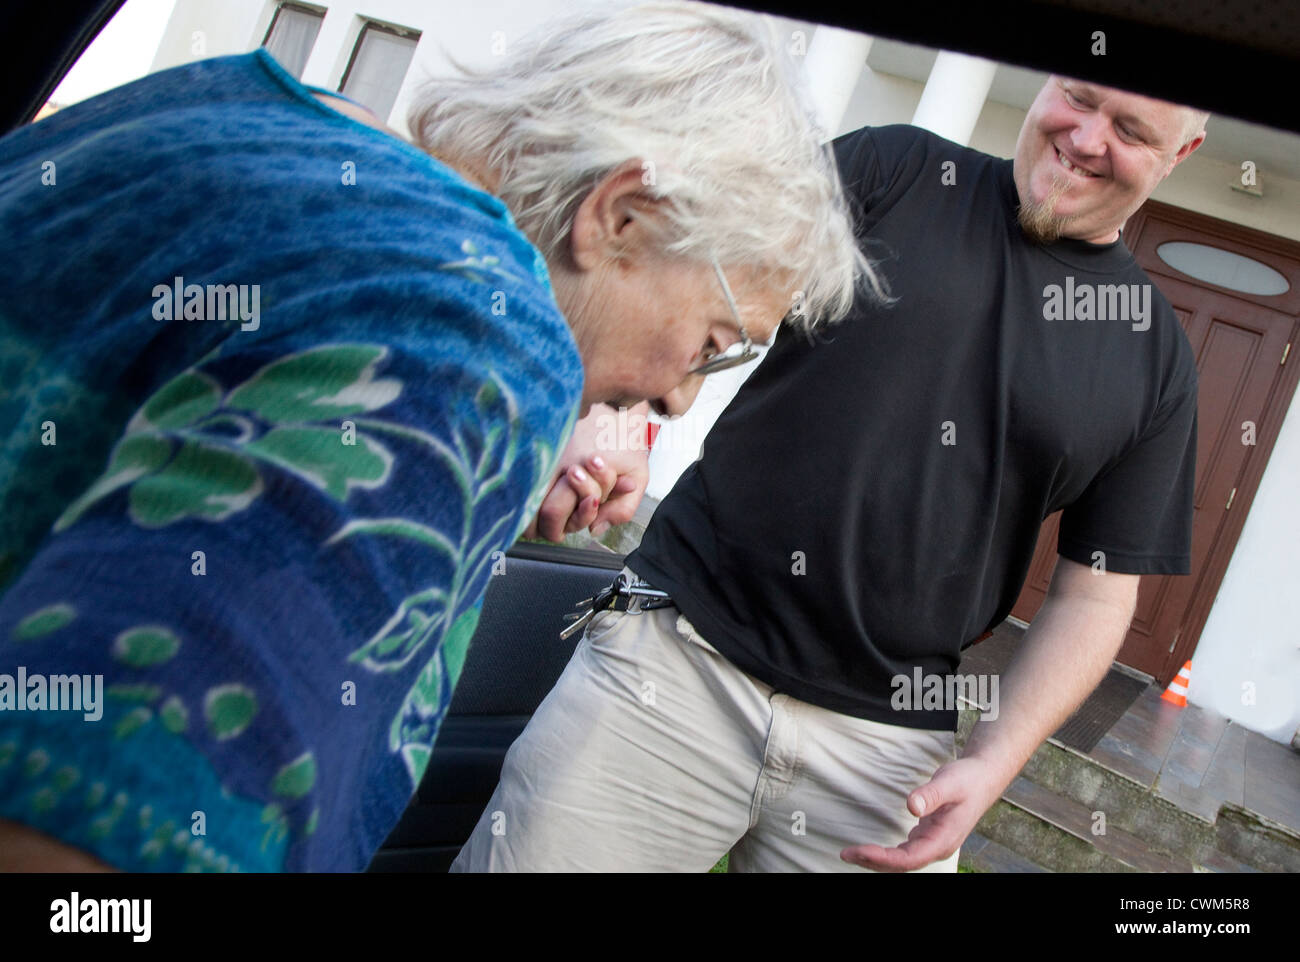 Good natured grandson pulling ensconced grandmother from car after ride to neighbors house age 86 and 37. Zawady - Stock Image